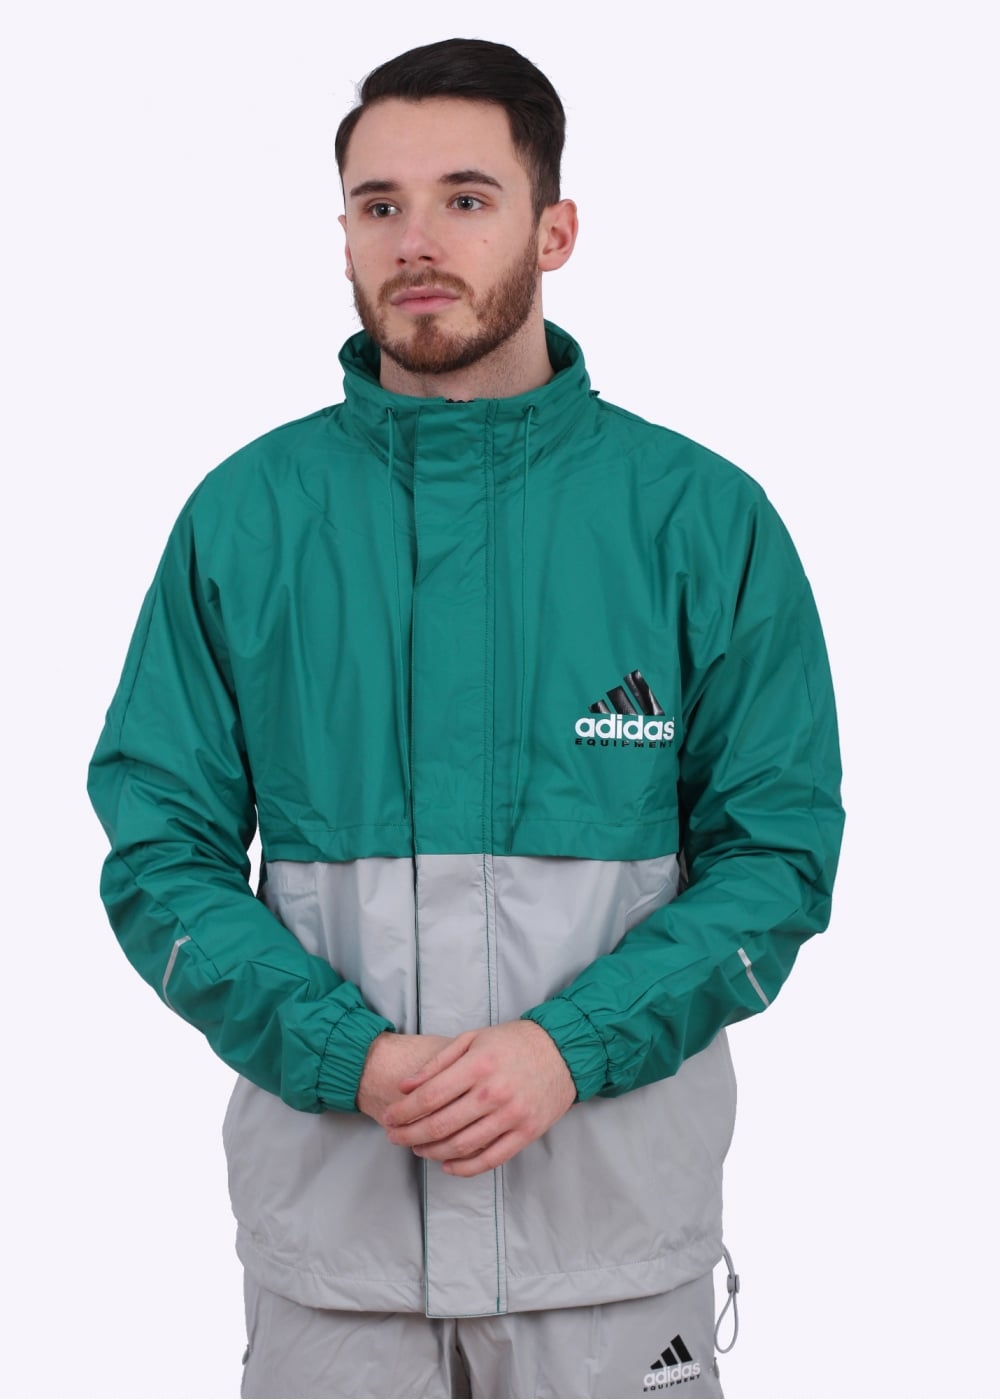 21a9be2874aa adidas Originals EQT OG Windbreaker - Green   Stone